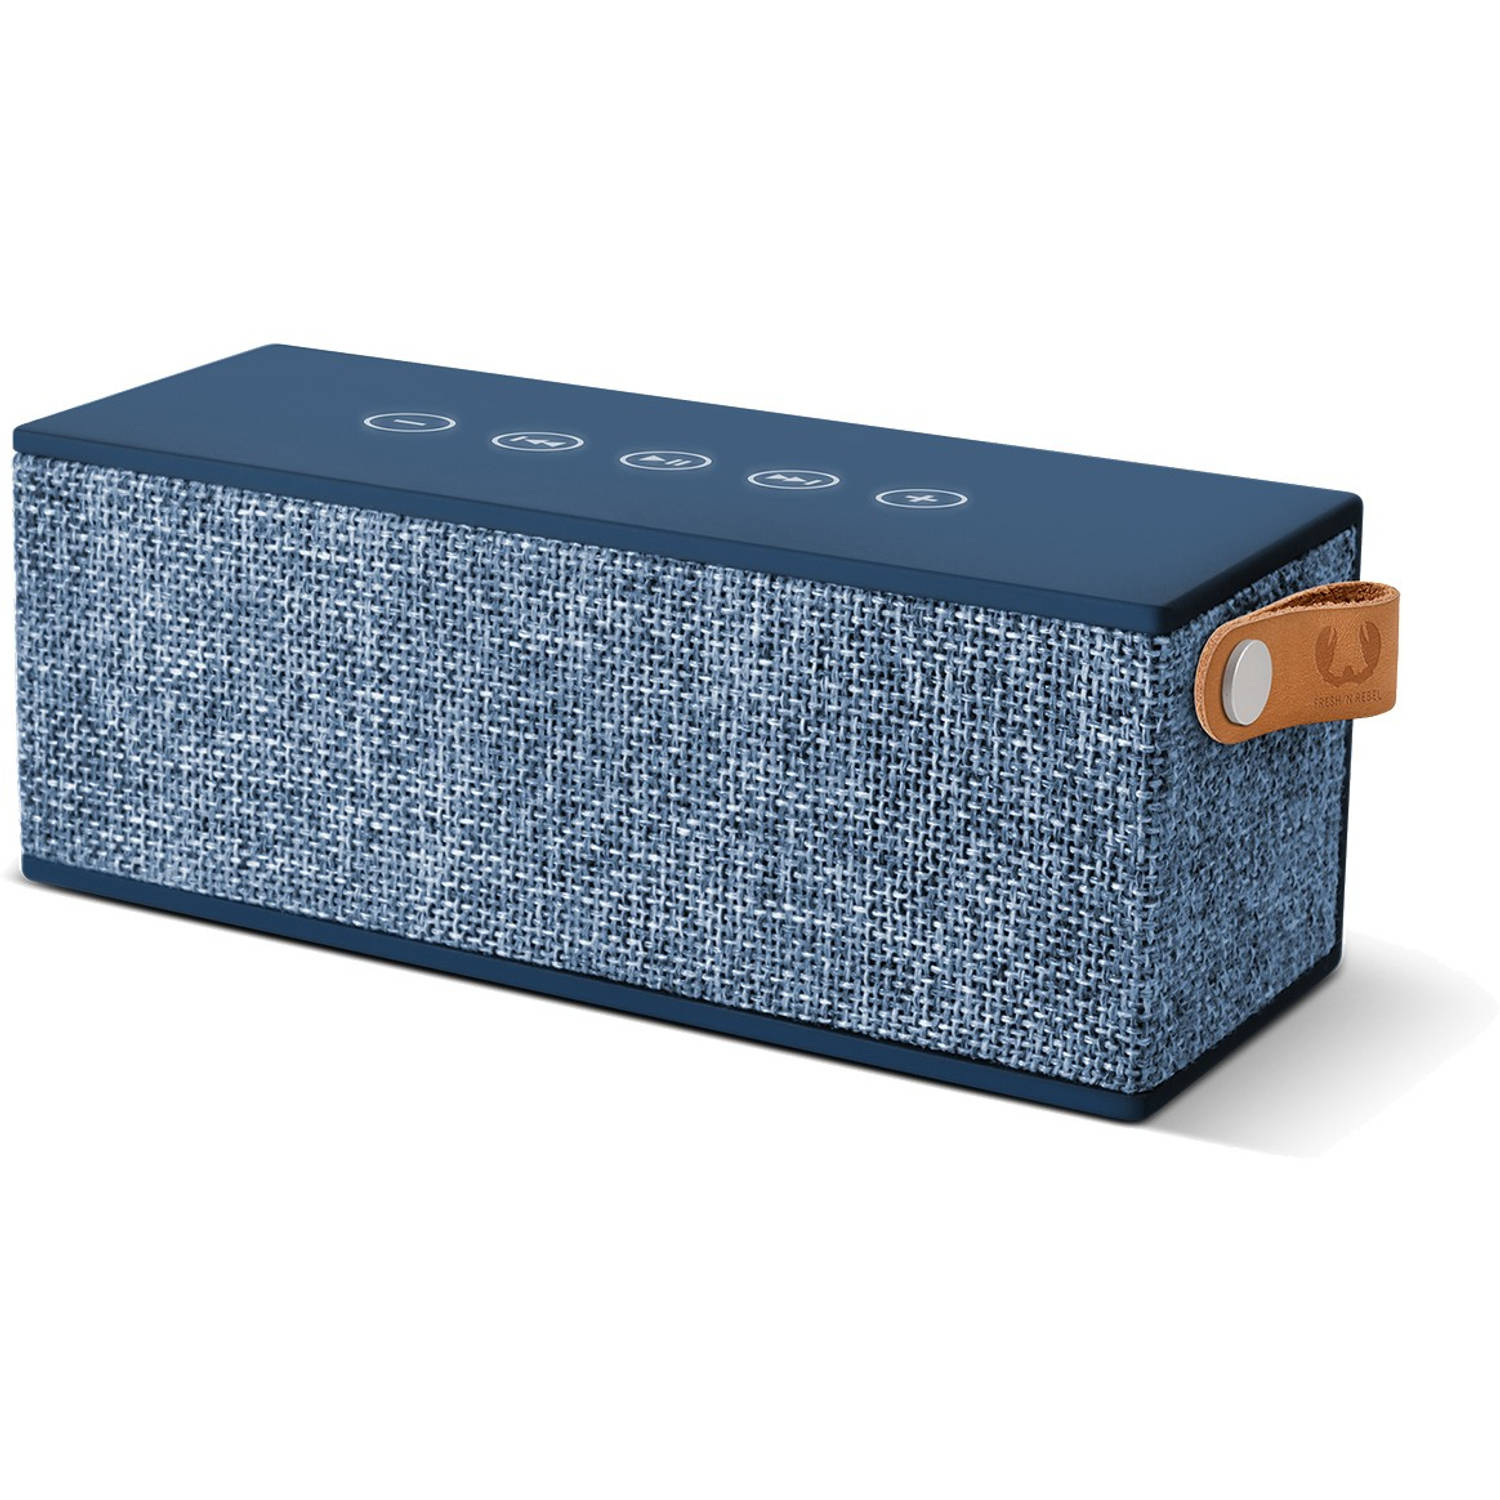 Rockbox Brick Fabriq Edition Indigo